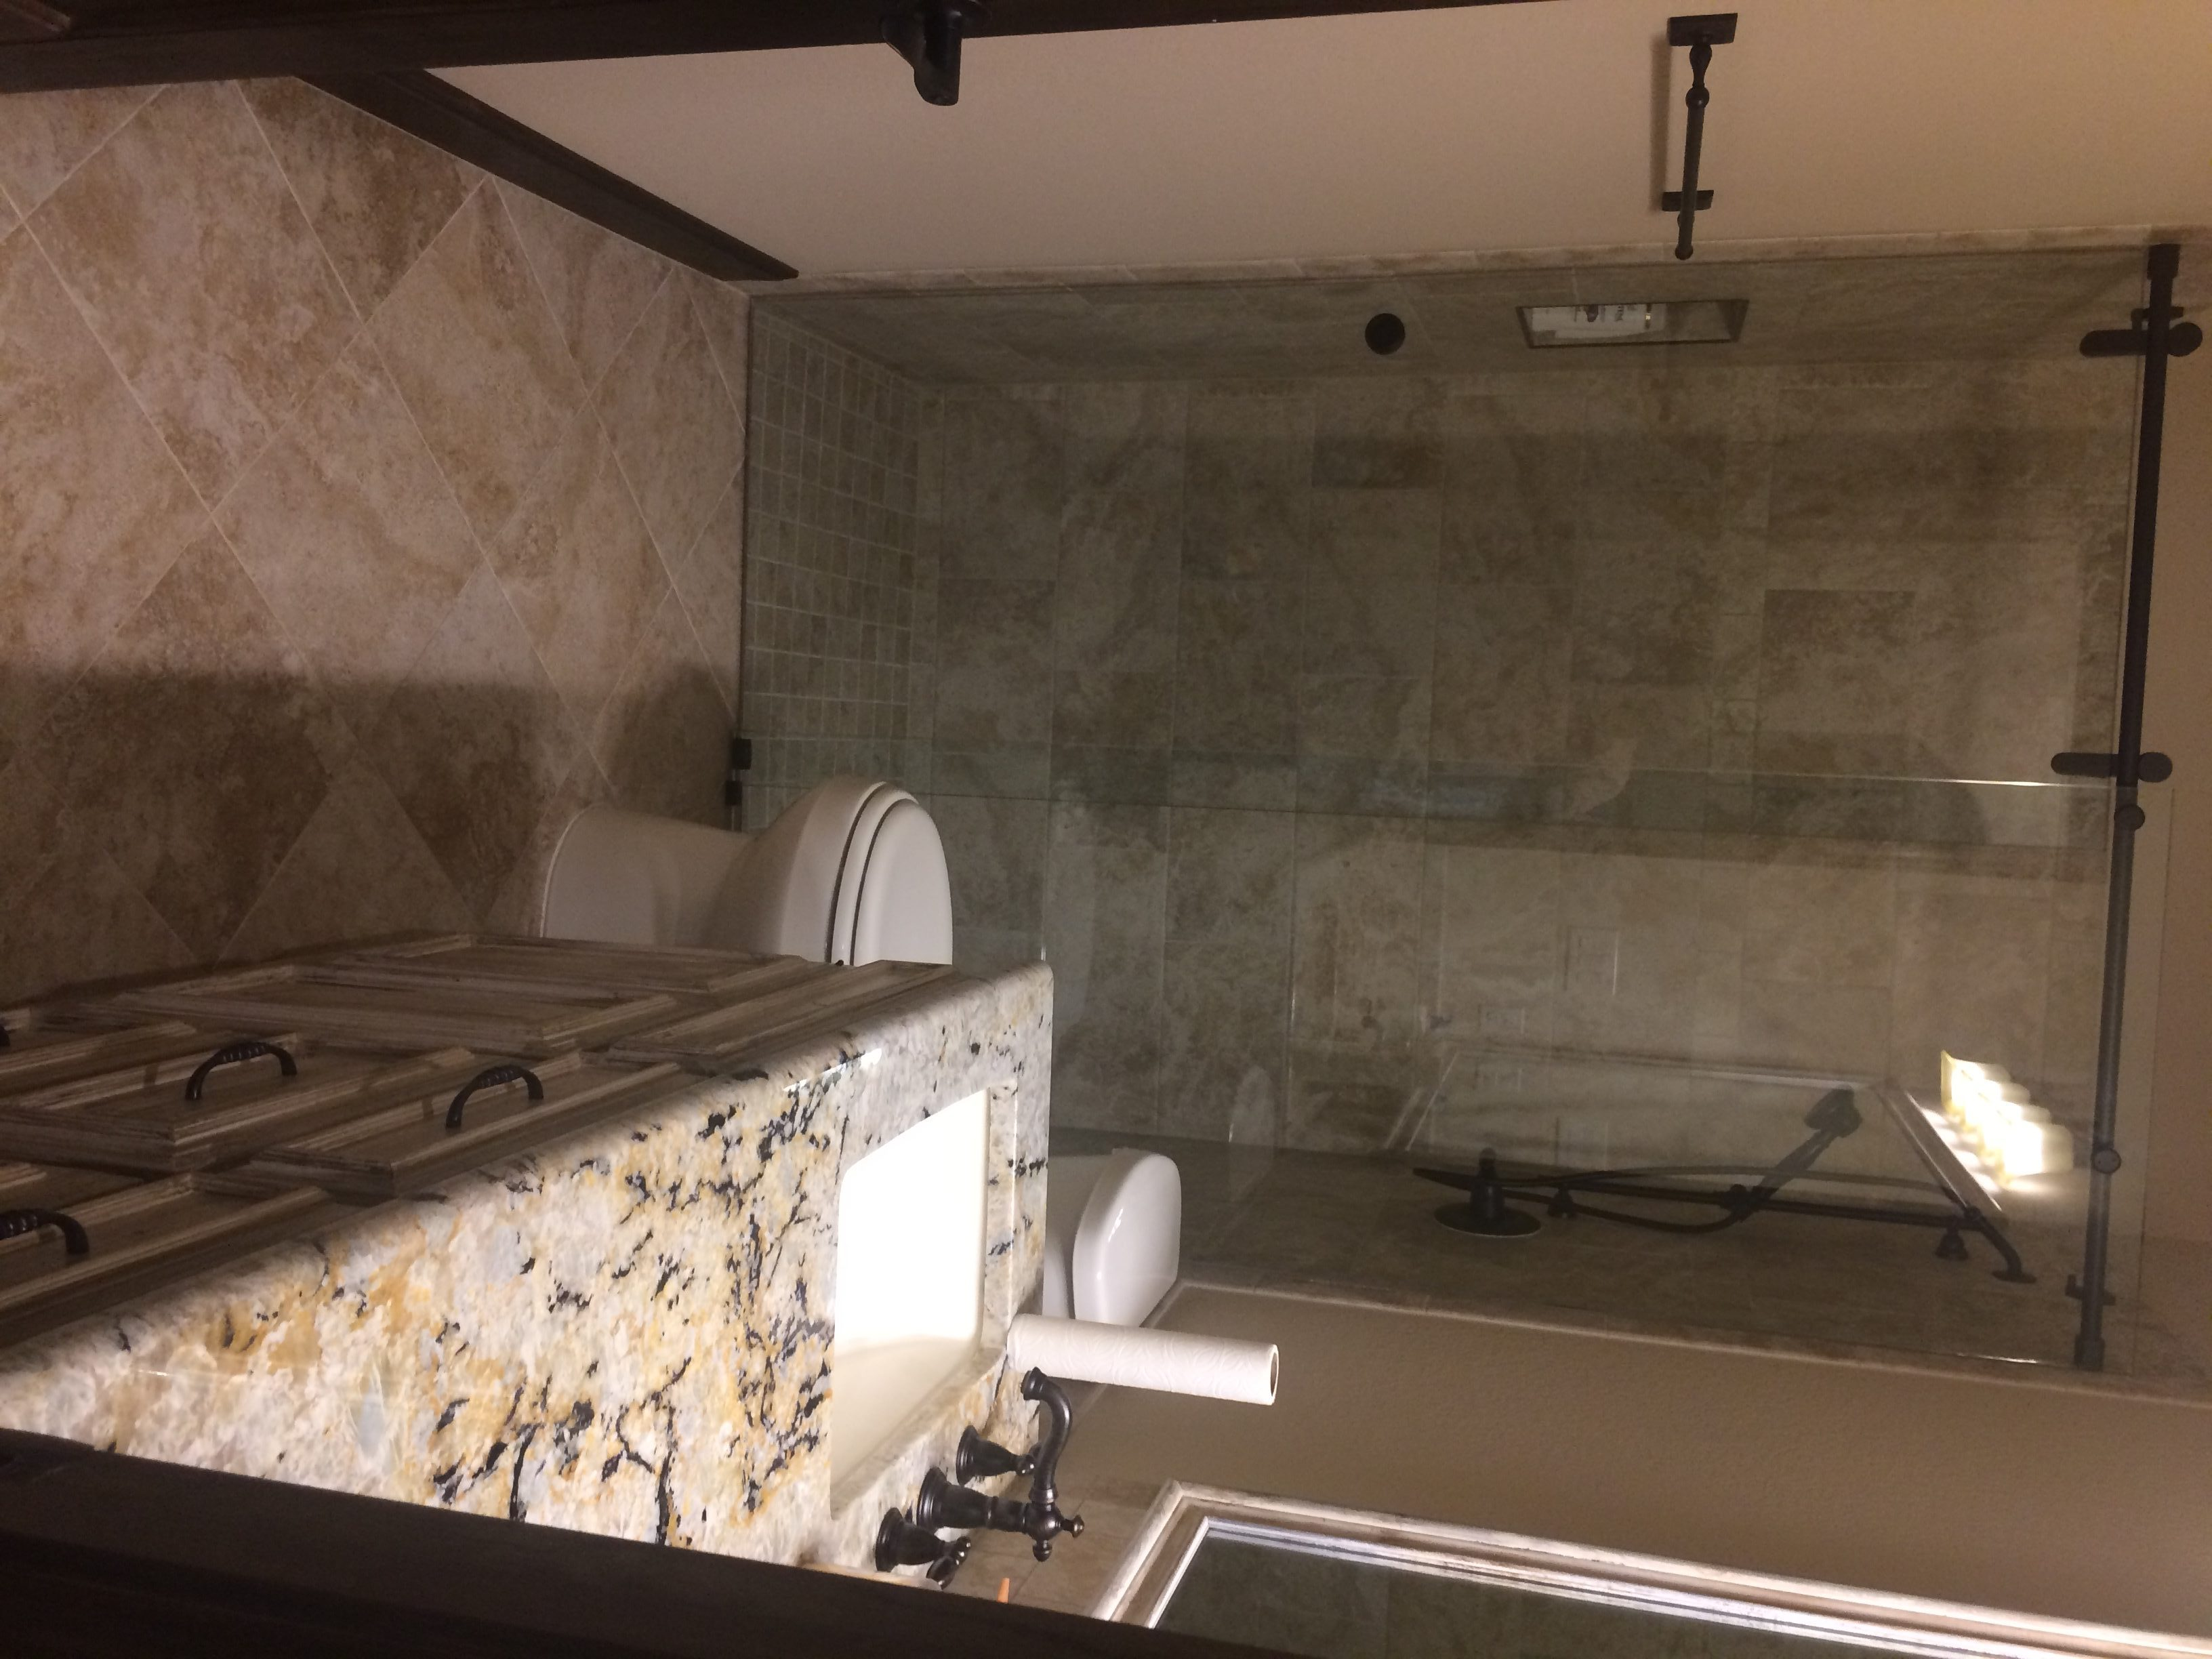 remodel works bath & kitchen aid pro 600 and bathroom our work elite floors